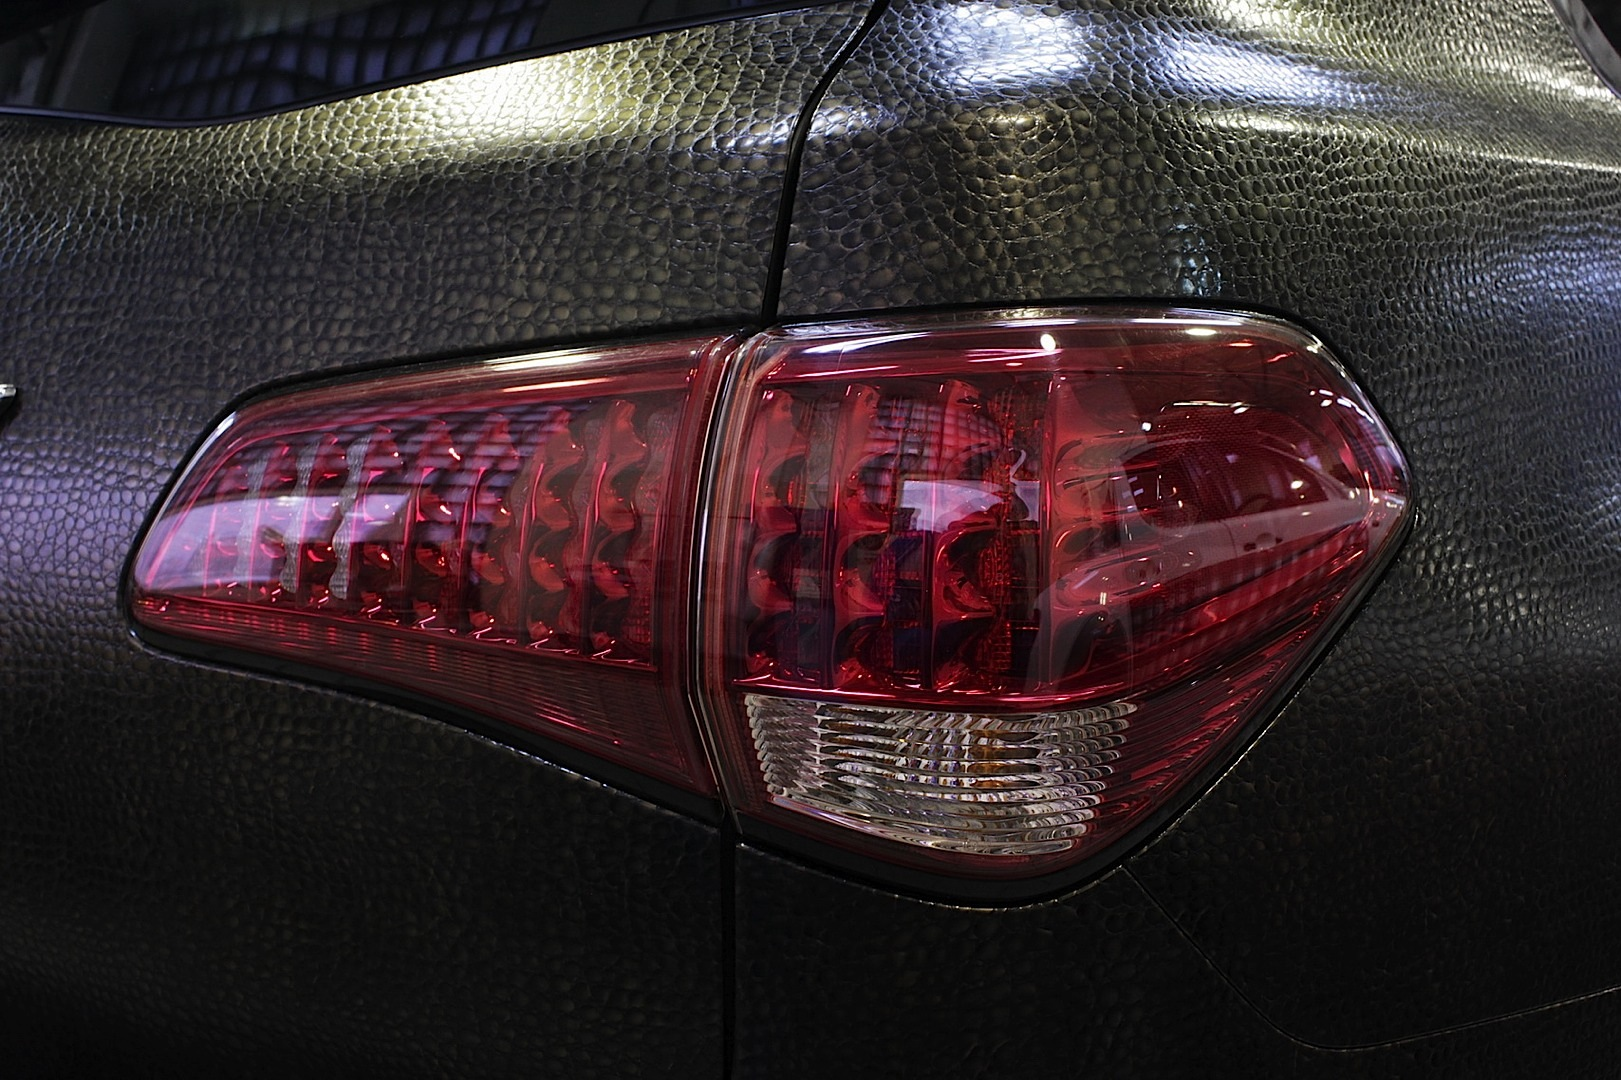 How Much To Paint A Car >> Infiniti QX Wrapped in Alligator Skin - autoevolution